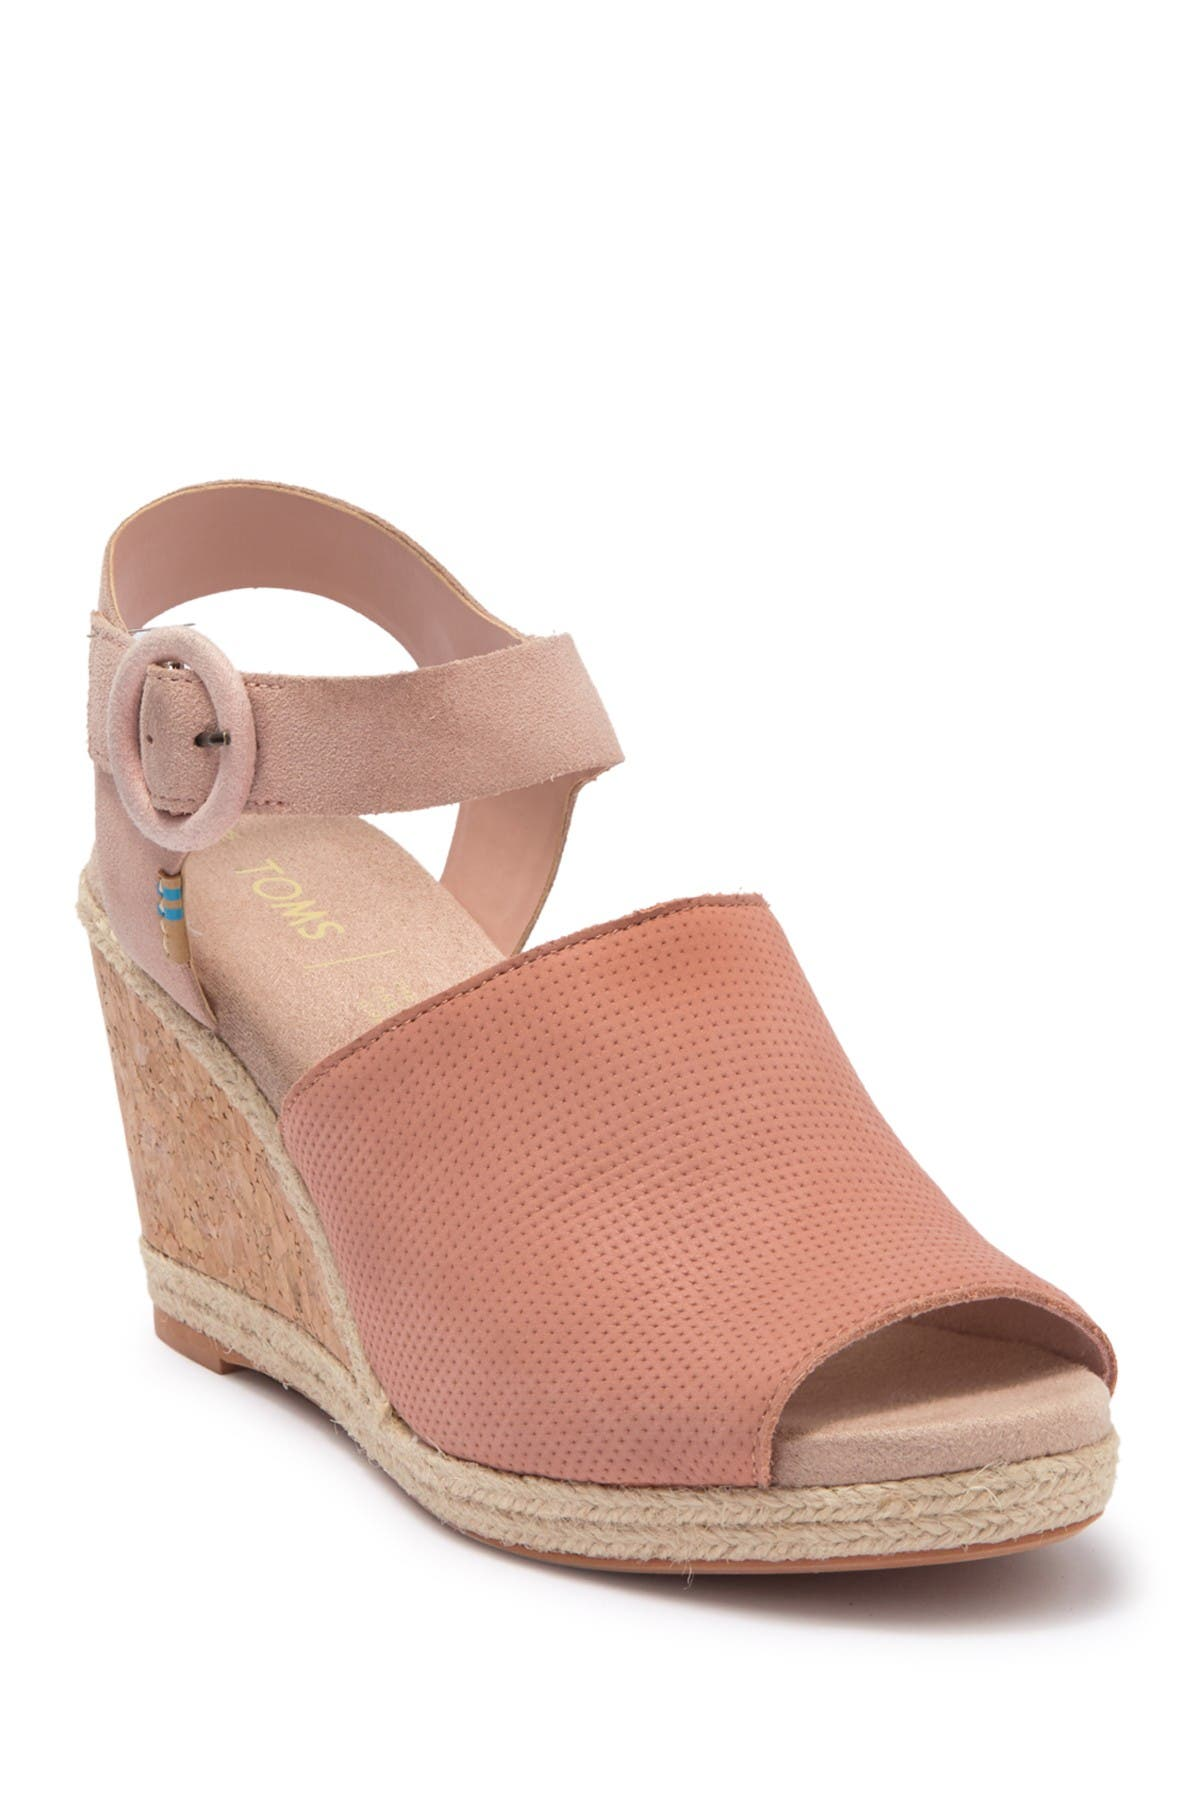 Image of TOMS Tropez Womens Pink Leather Shoes